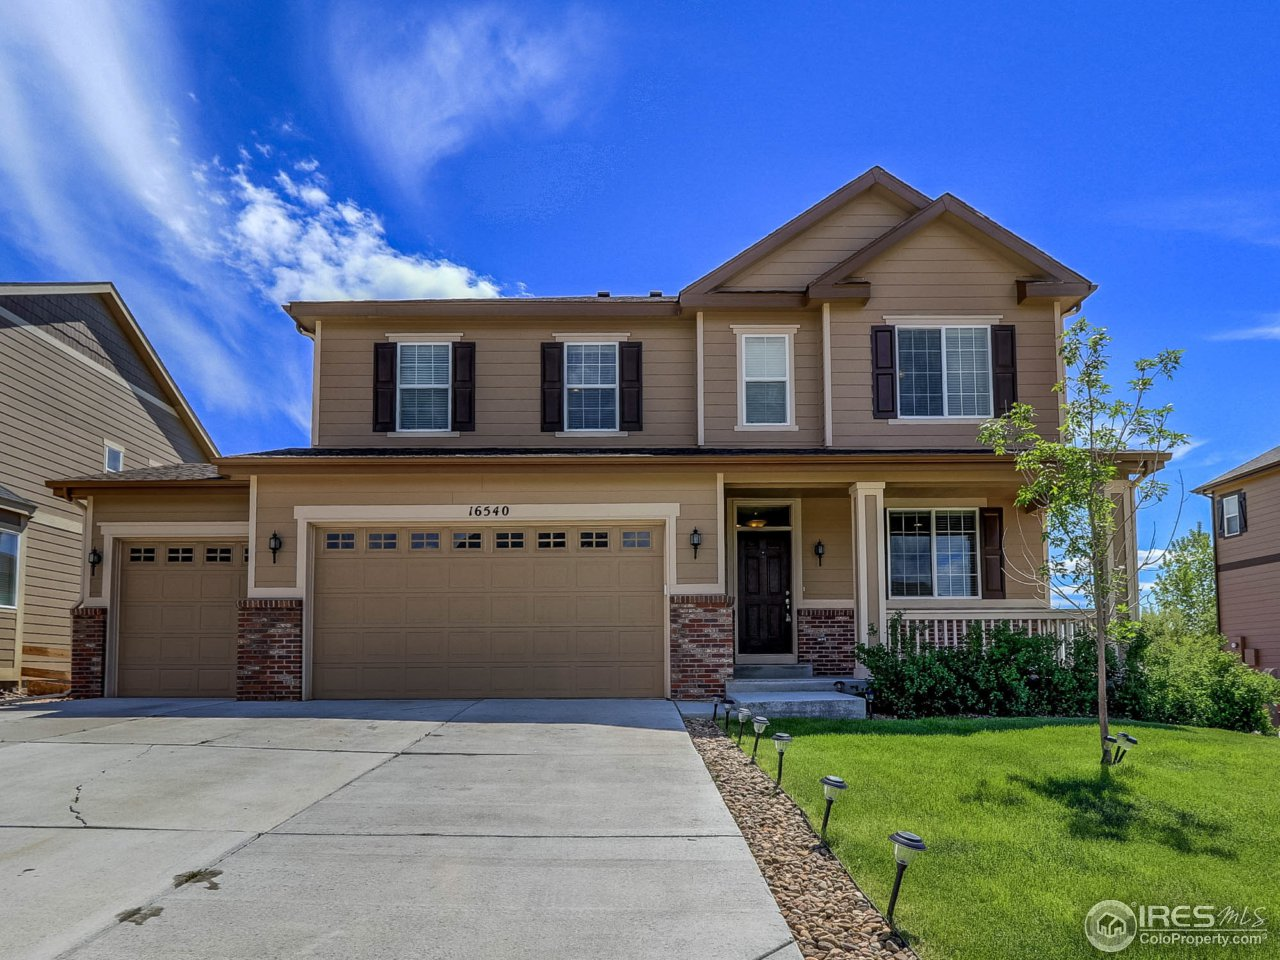 16540 Sanford St, Mead, CO 80542